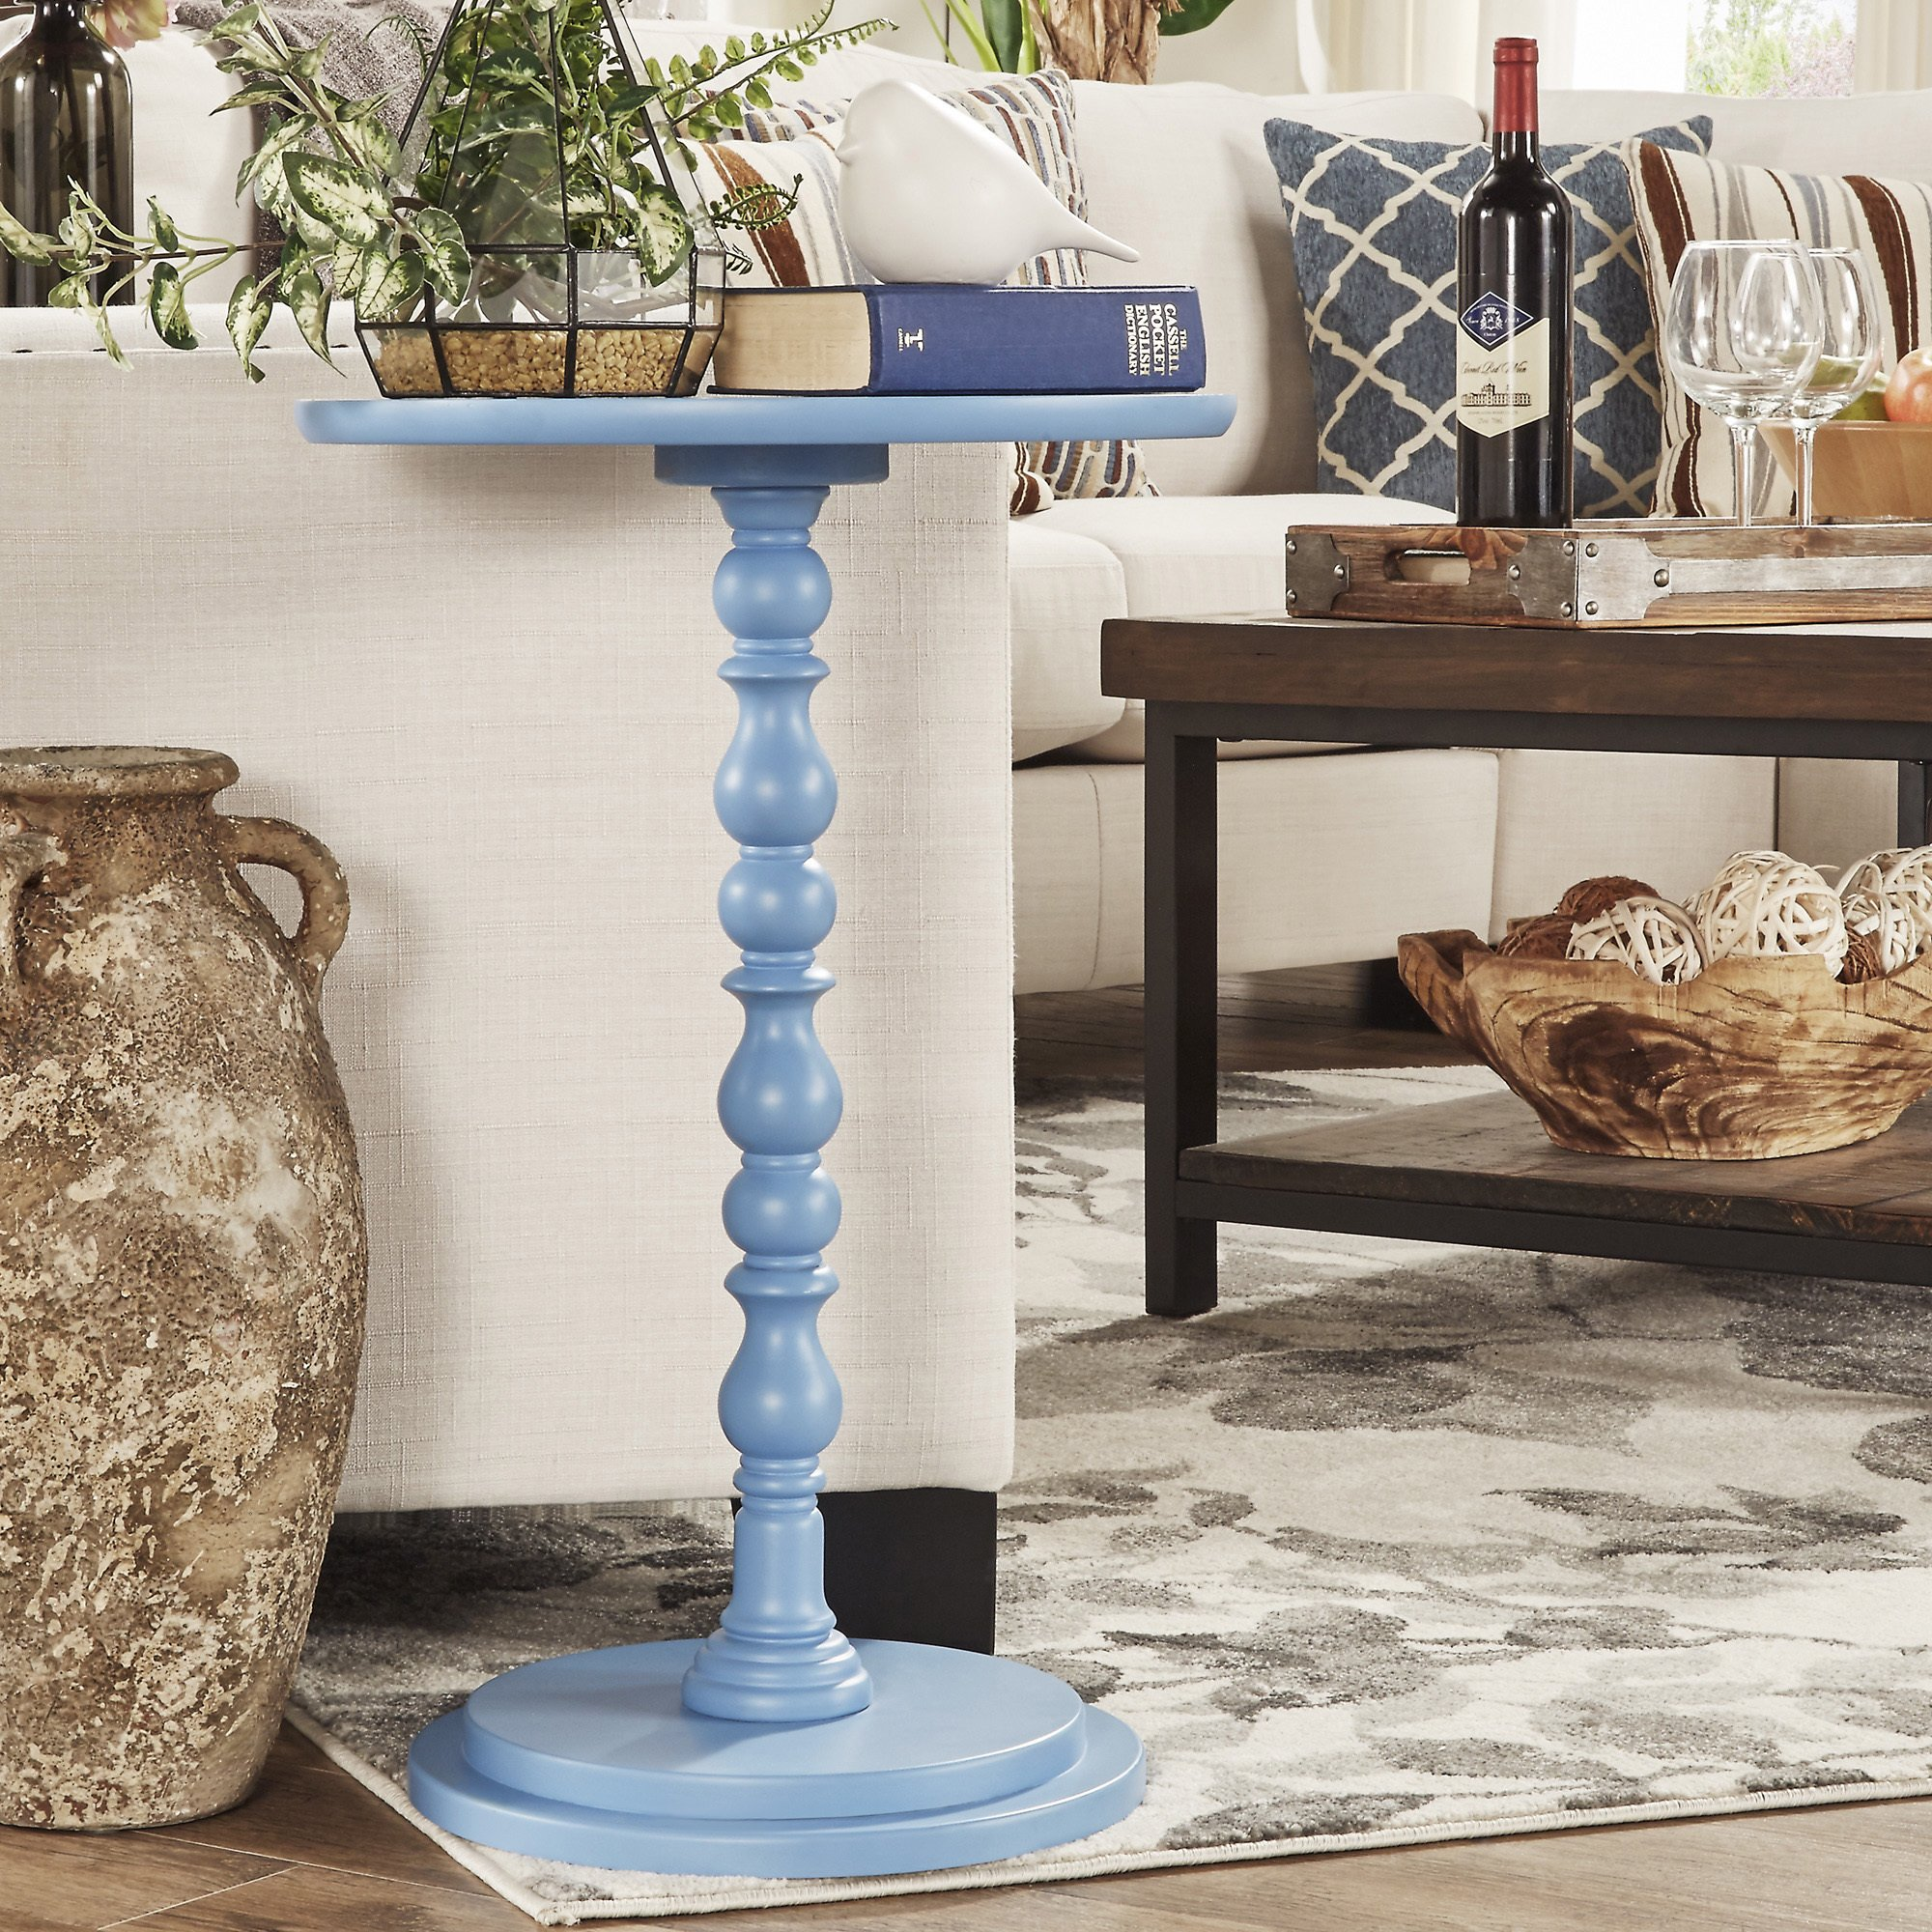 acapella sky blue round accent end table free shipping today inspire console desk with drawers modern pedestal side bunnings trestle chair design rechargeable lamps for home patio